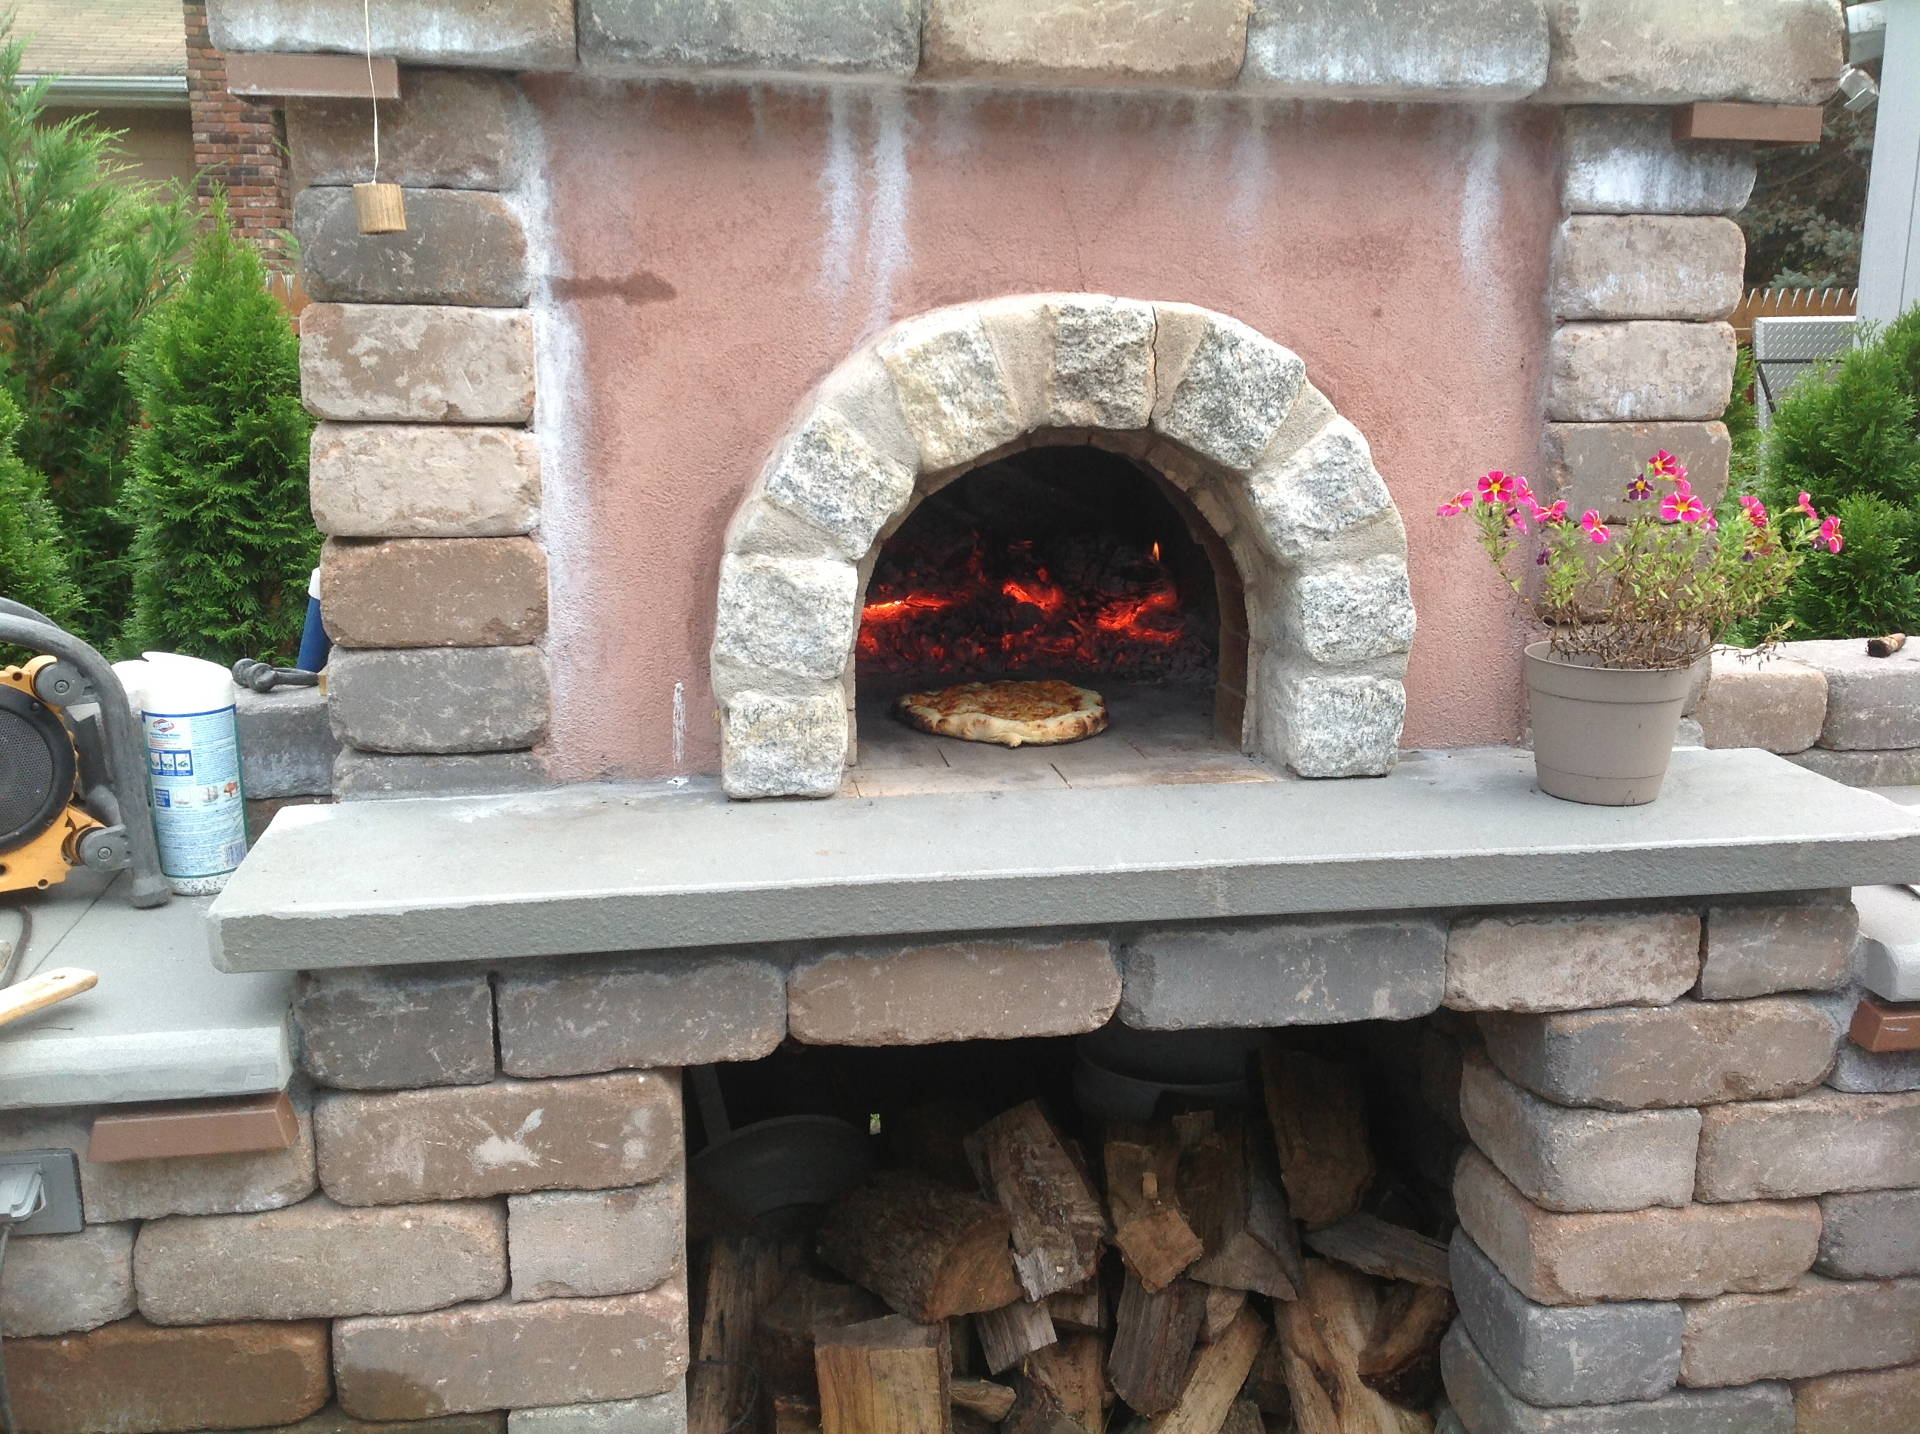 Li Outdoor Kitchen Ronkonkoma Brick Oven Holbrook Ny